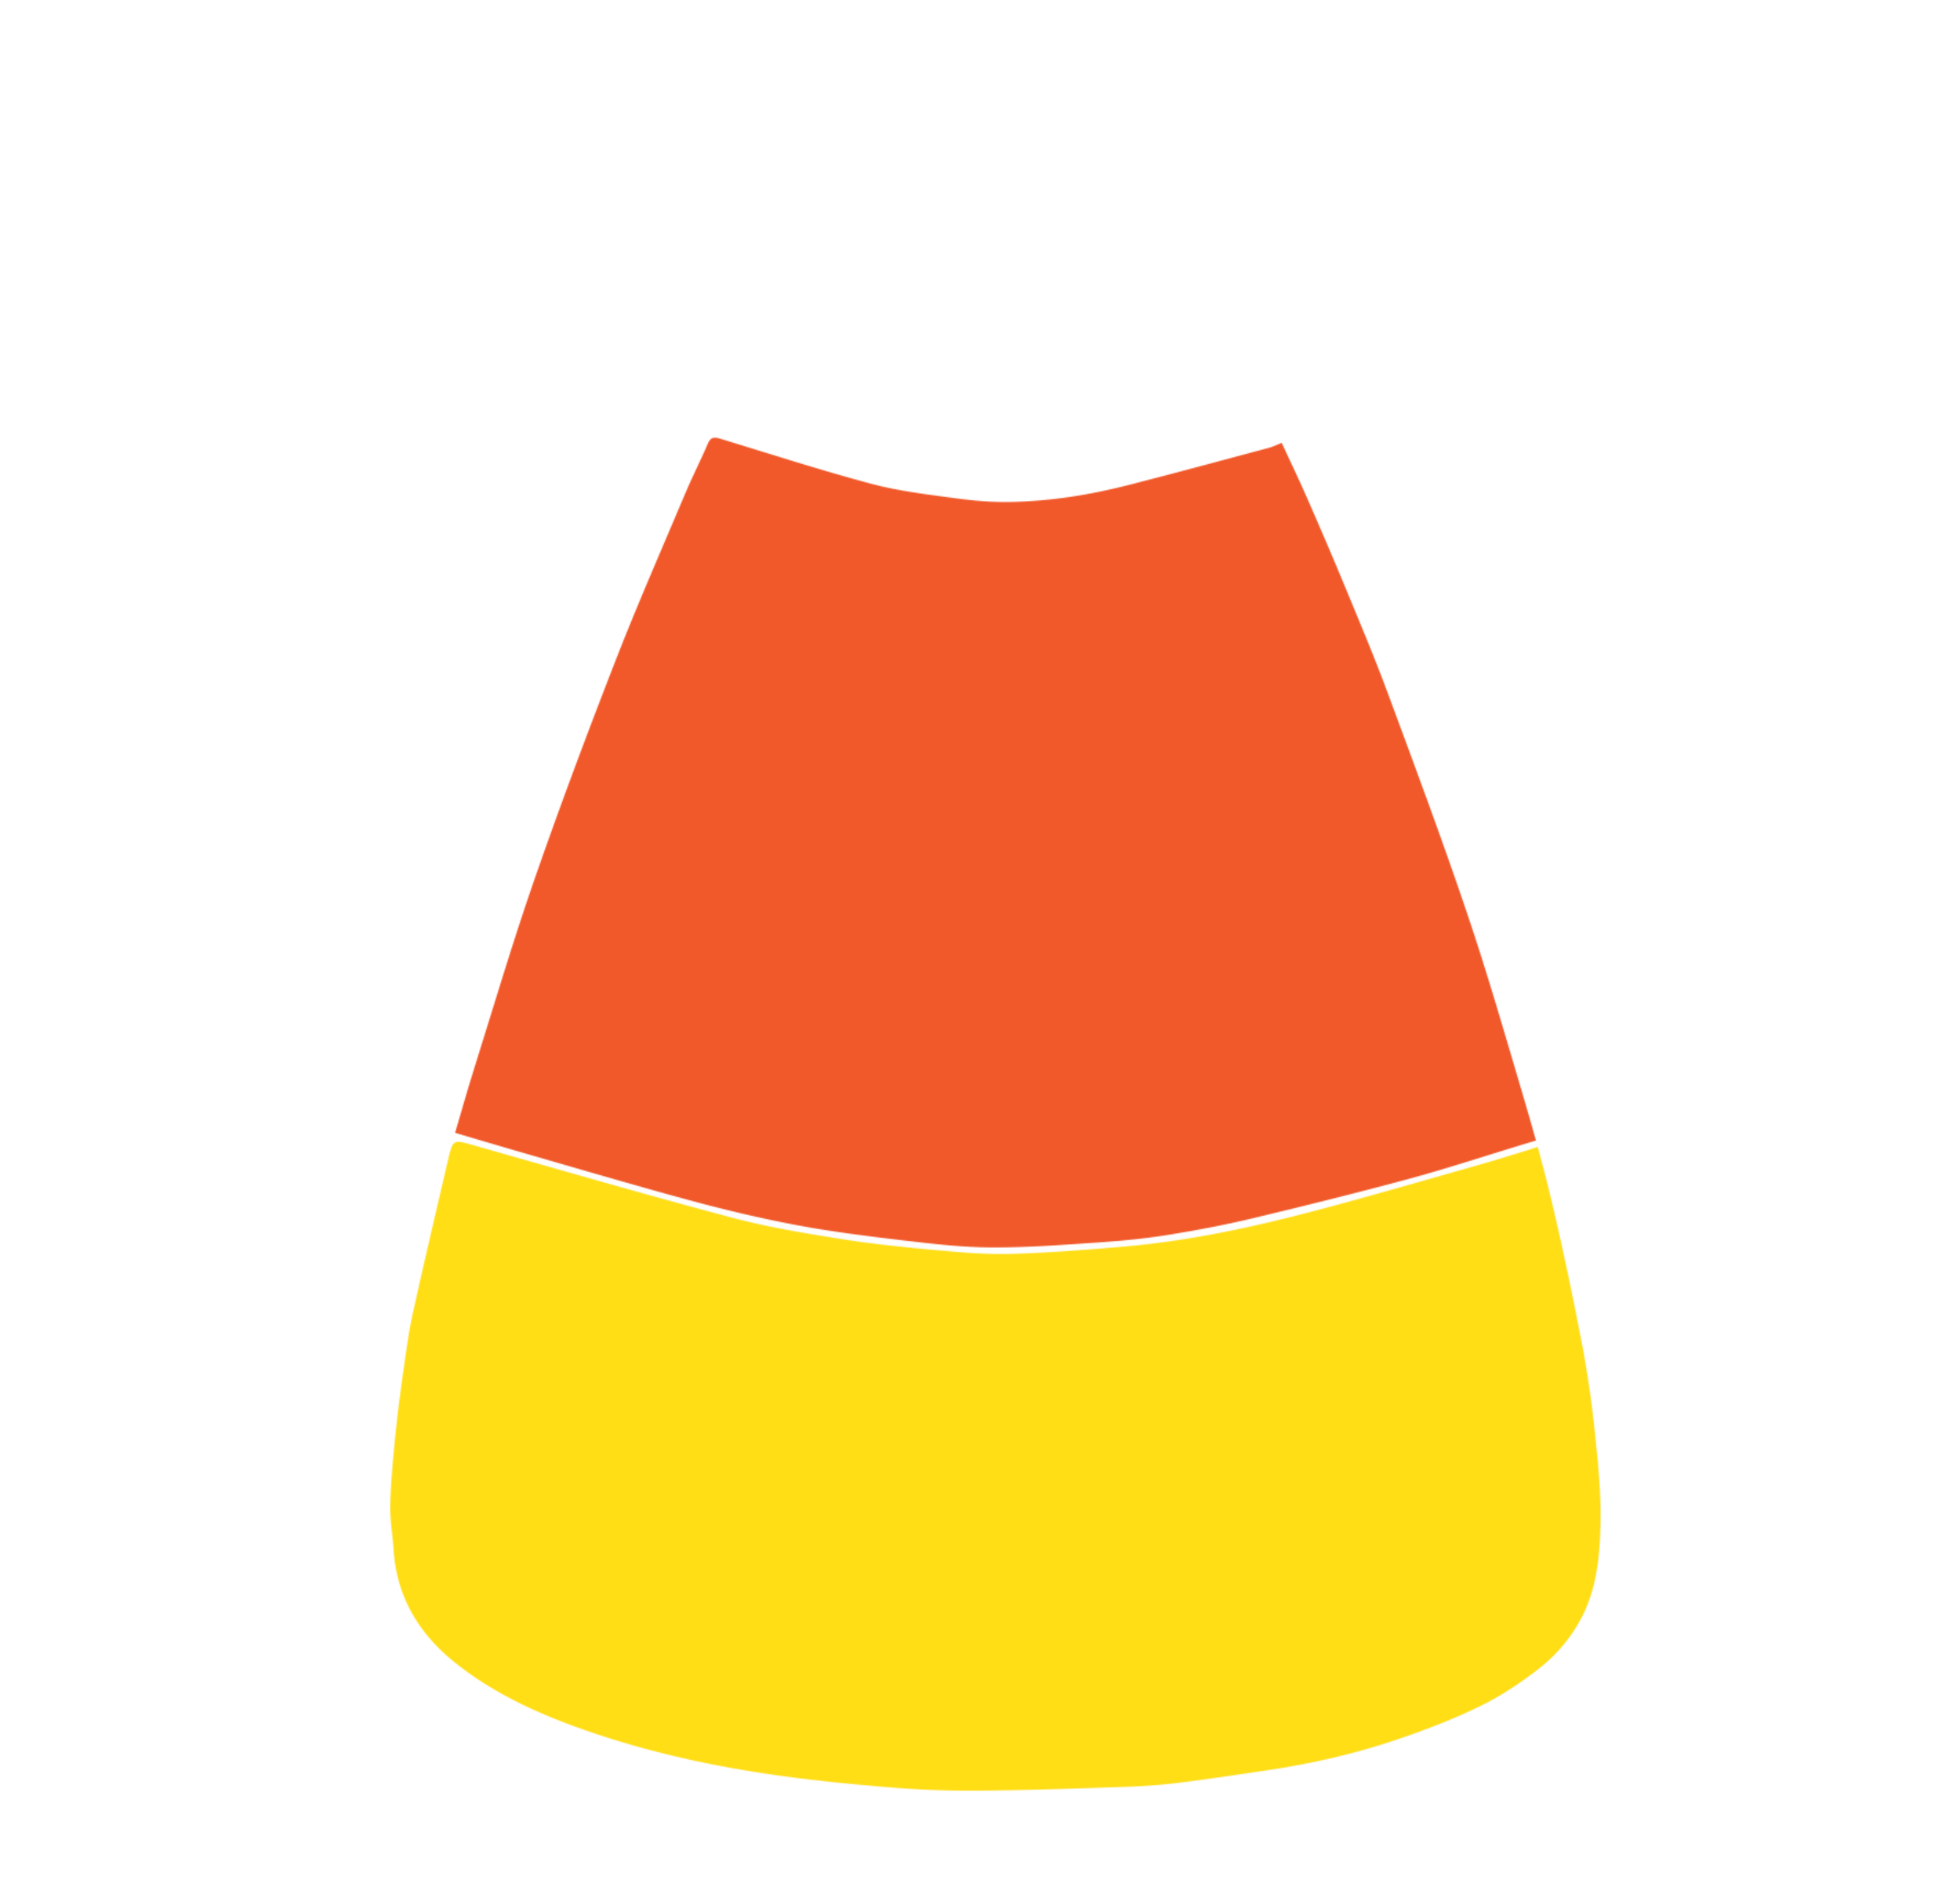 candy corn halloween candy clip art cliparts #35847